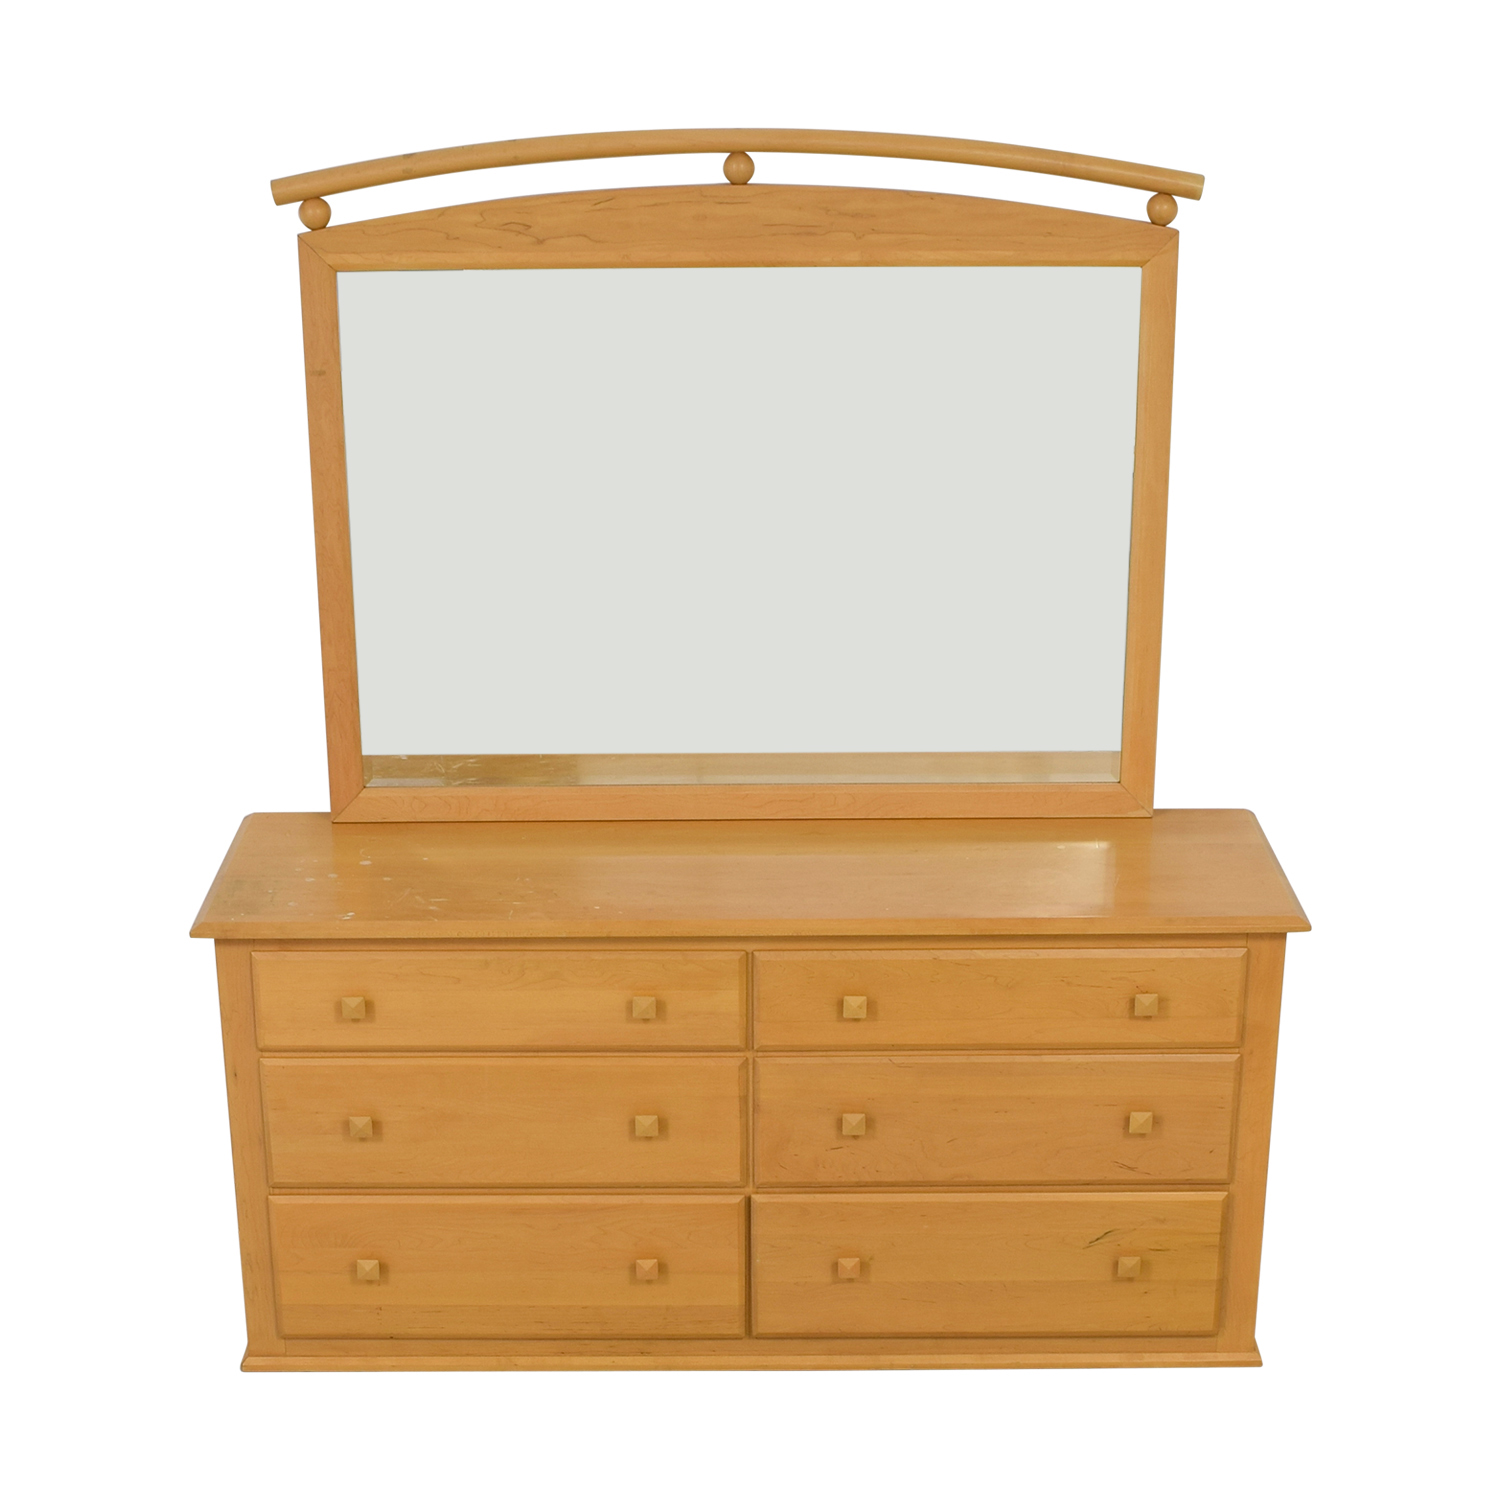 Ethan Allen American Dimensions Natural Six-Drawer Dresser with Mirror / Storage